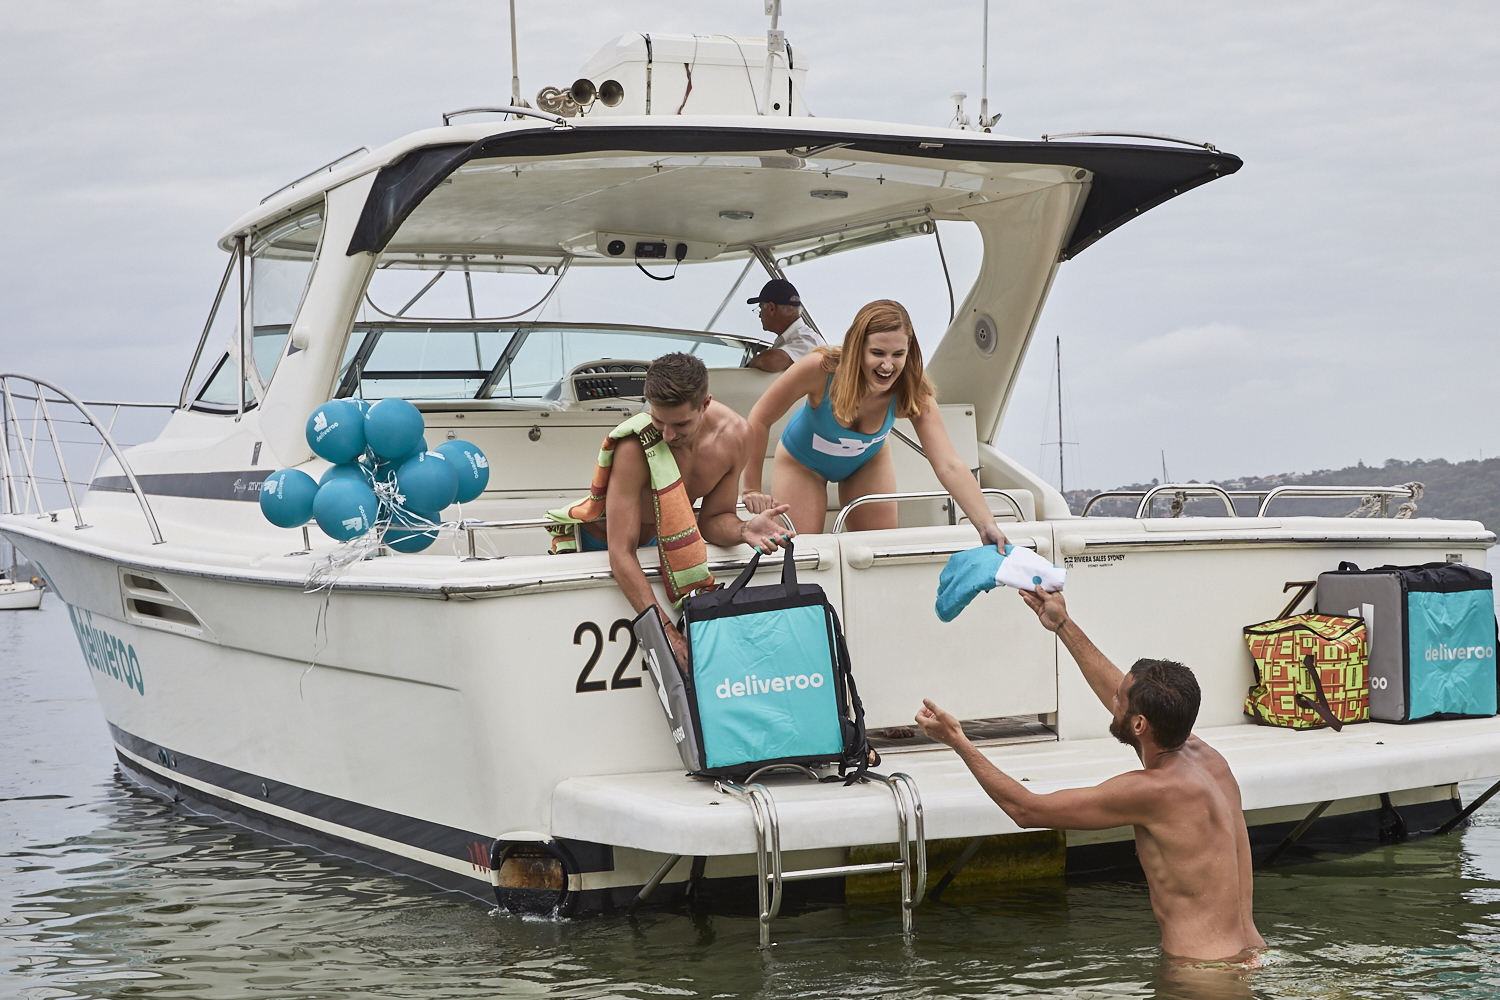 You can score free gelato this weekend, delivered by speedboat